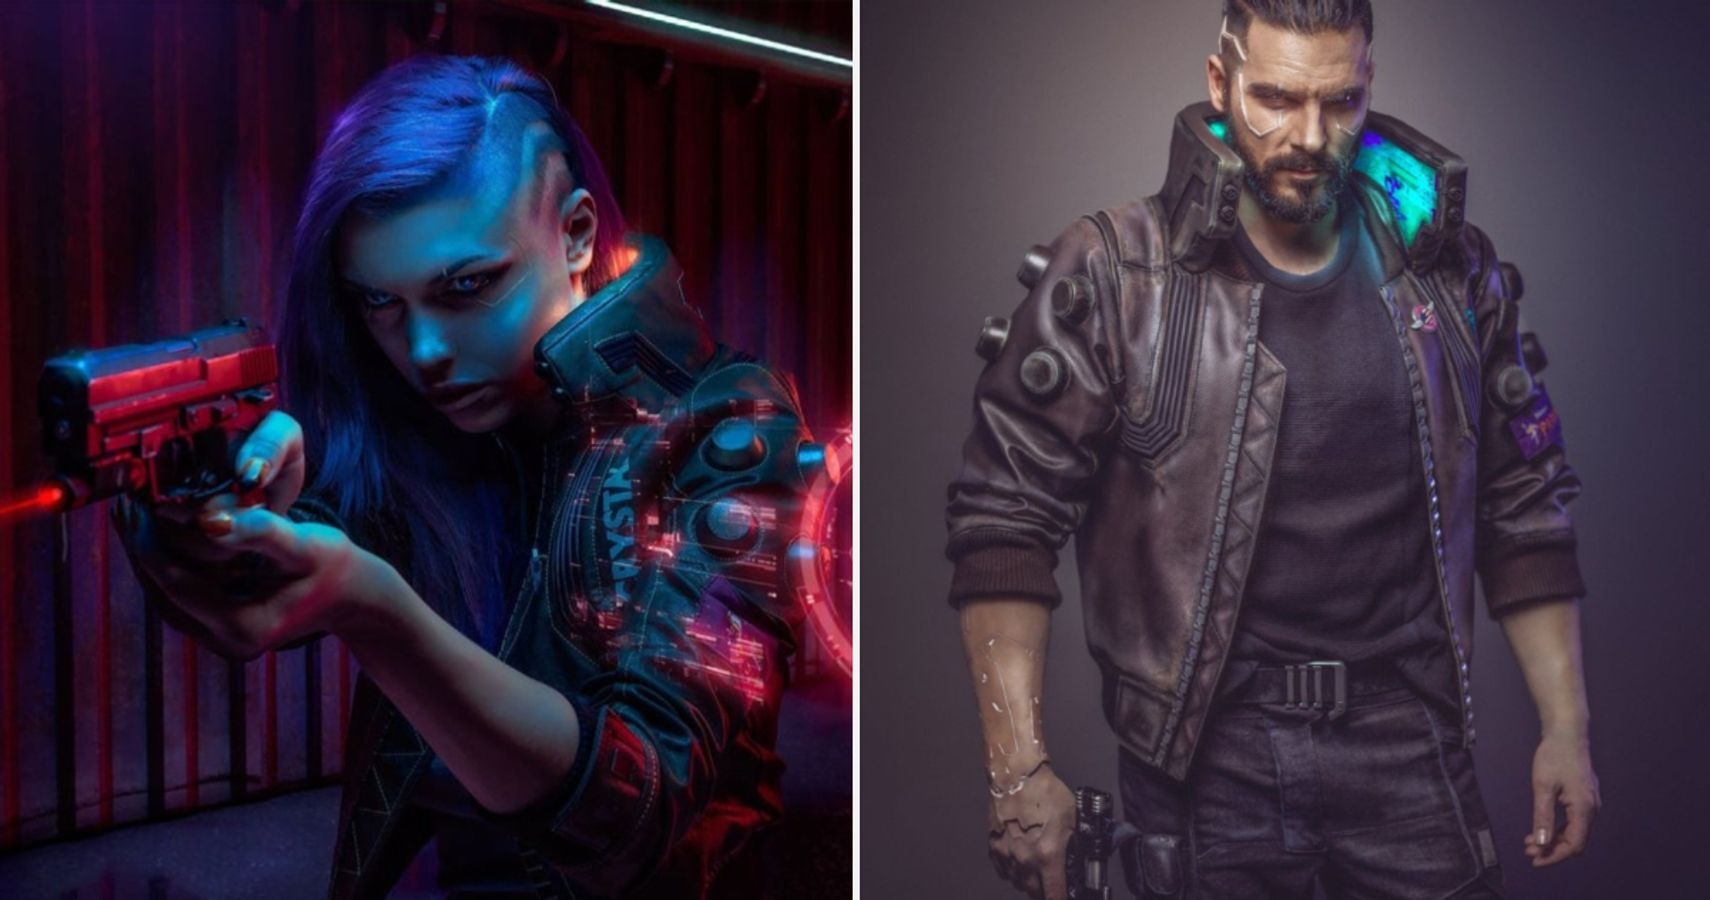 New Look at Jackie and Johnny: What Will Cyberpunk 2077